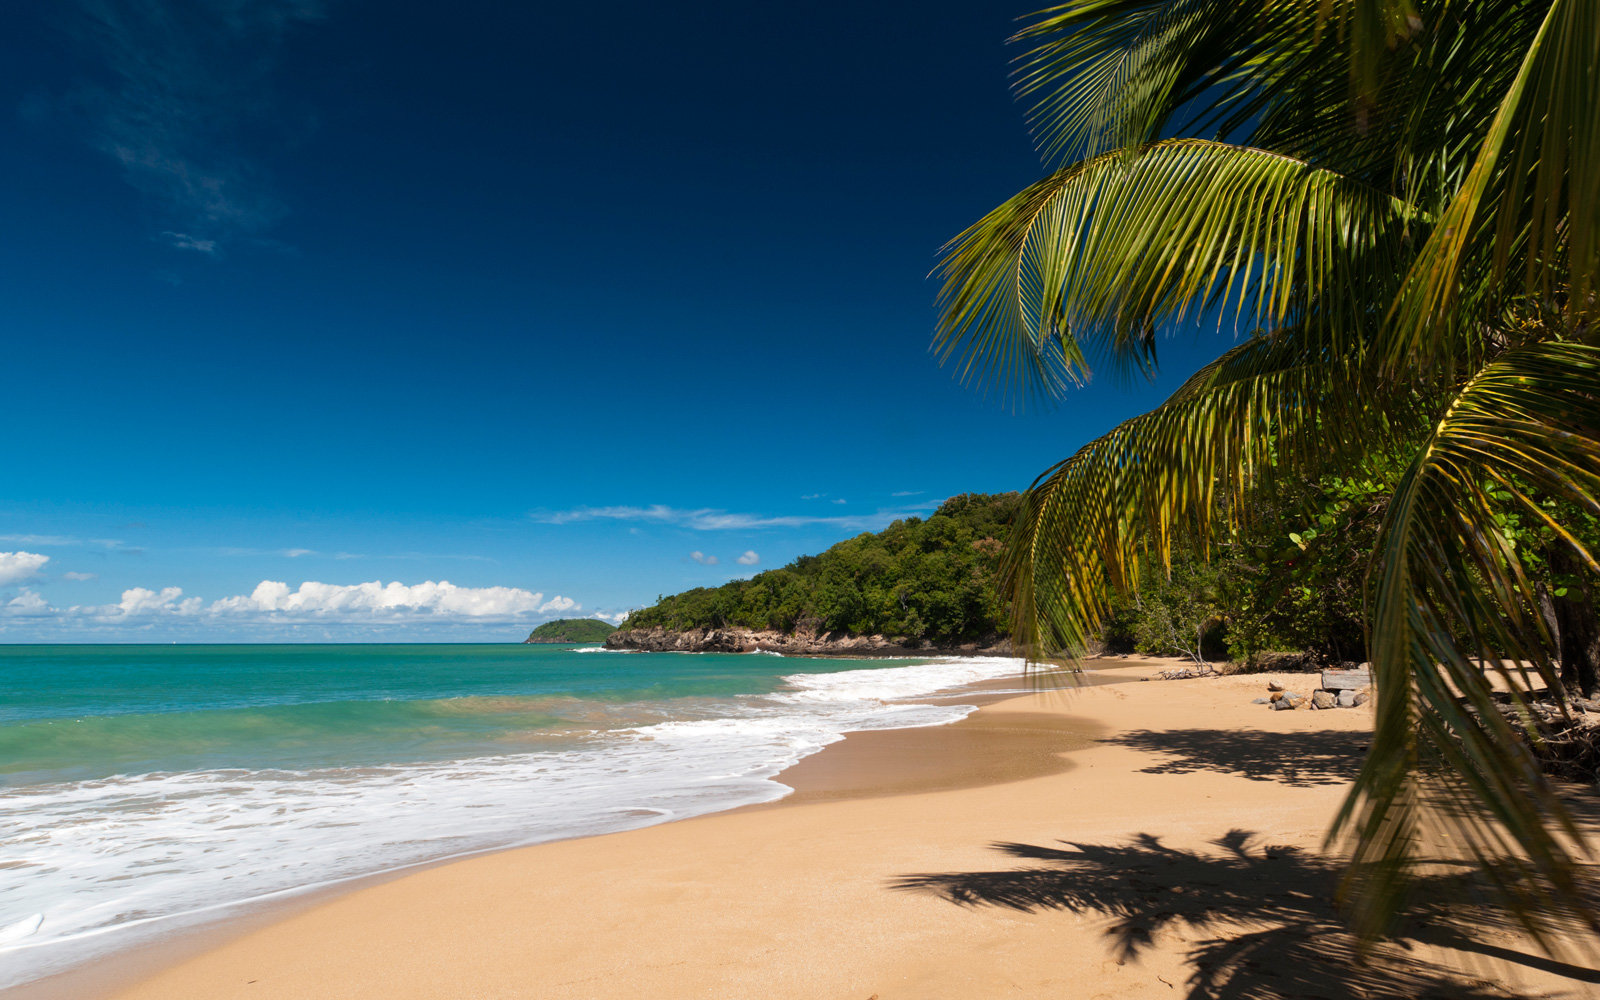 Get a flight to Guadeloupe starting at $59 one-way.